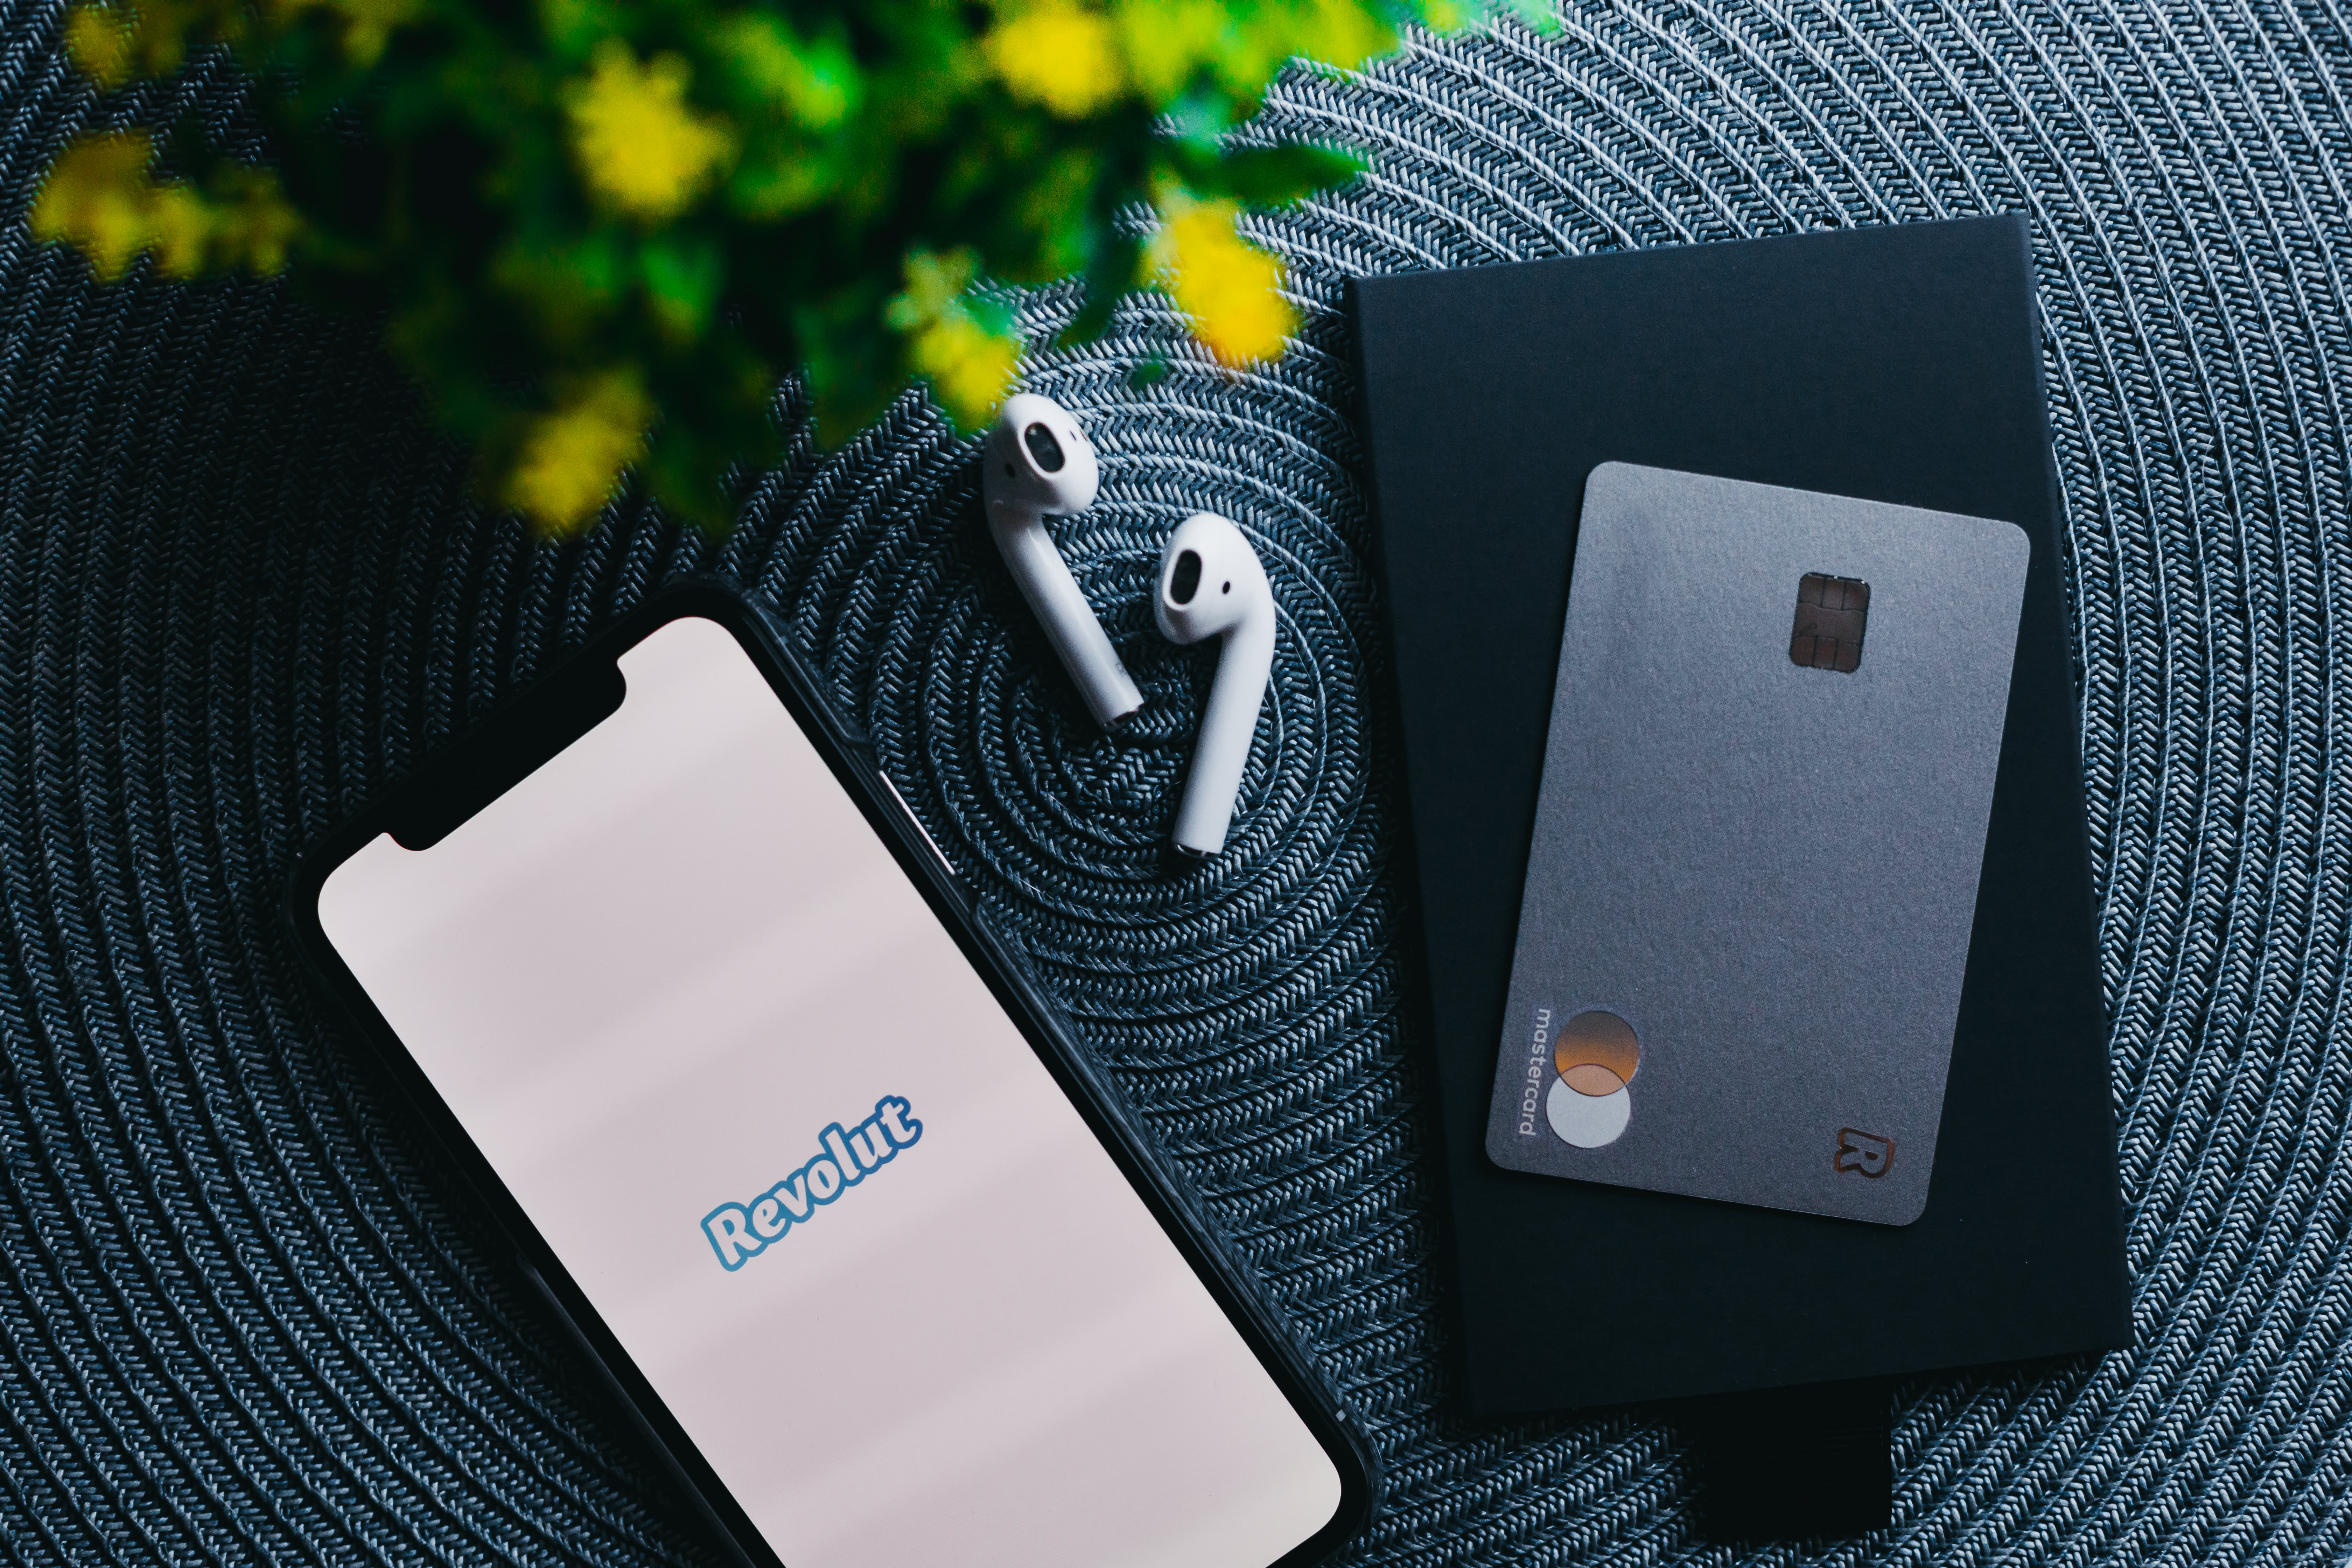 Revolut strikes deal with Mastercard to accelerate expansion into the US